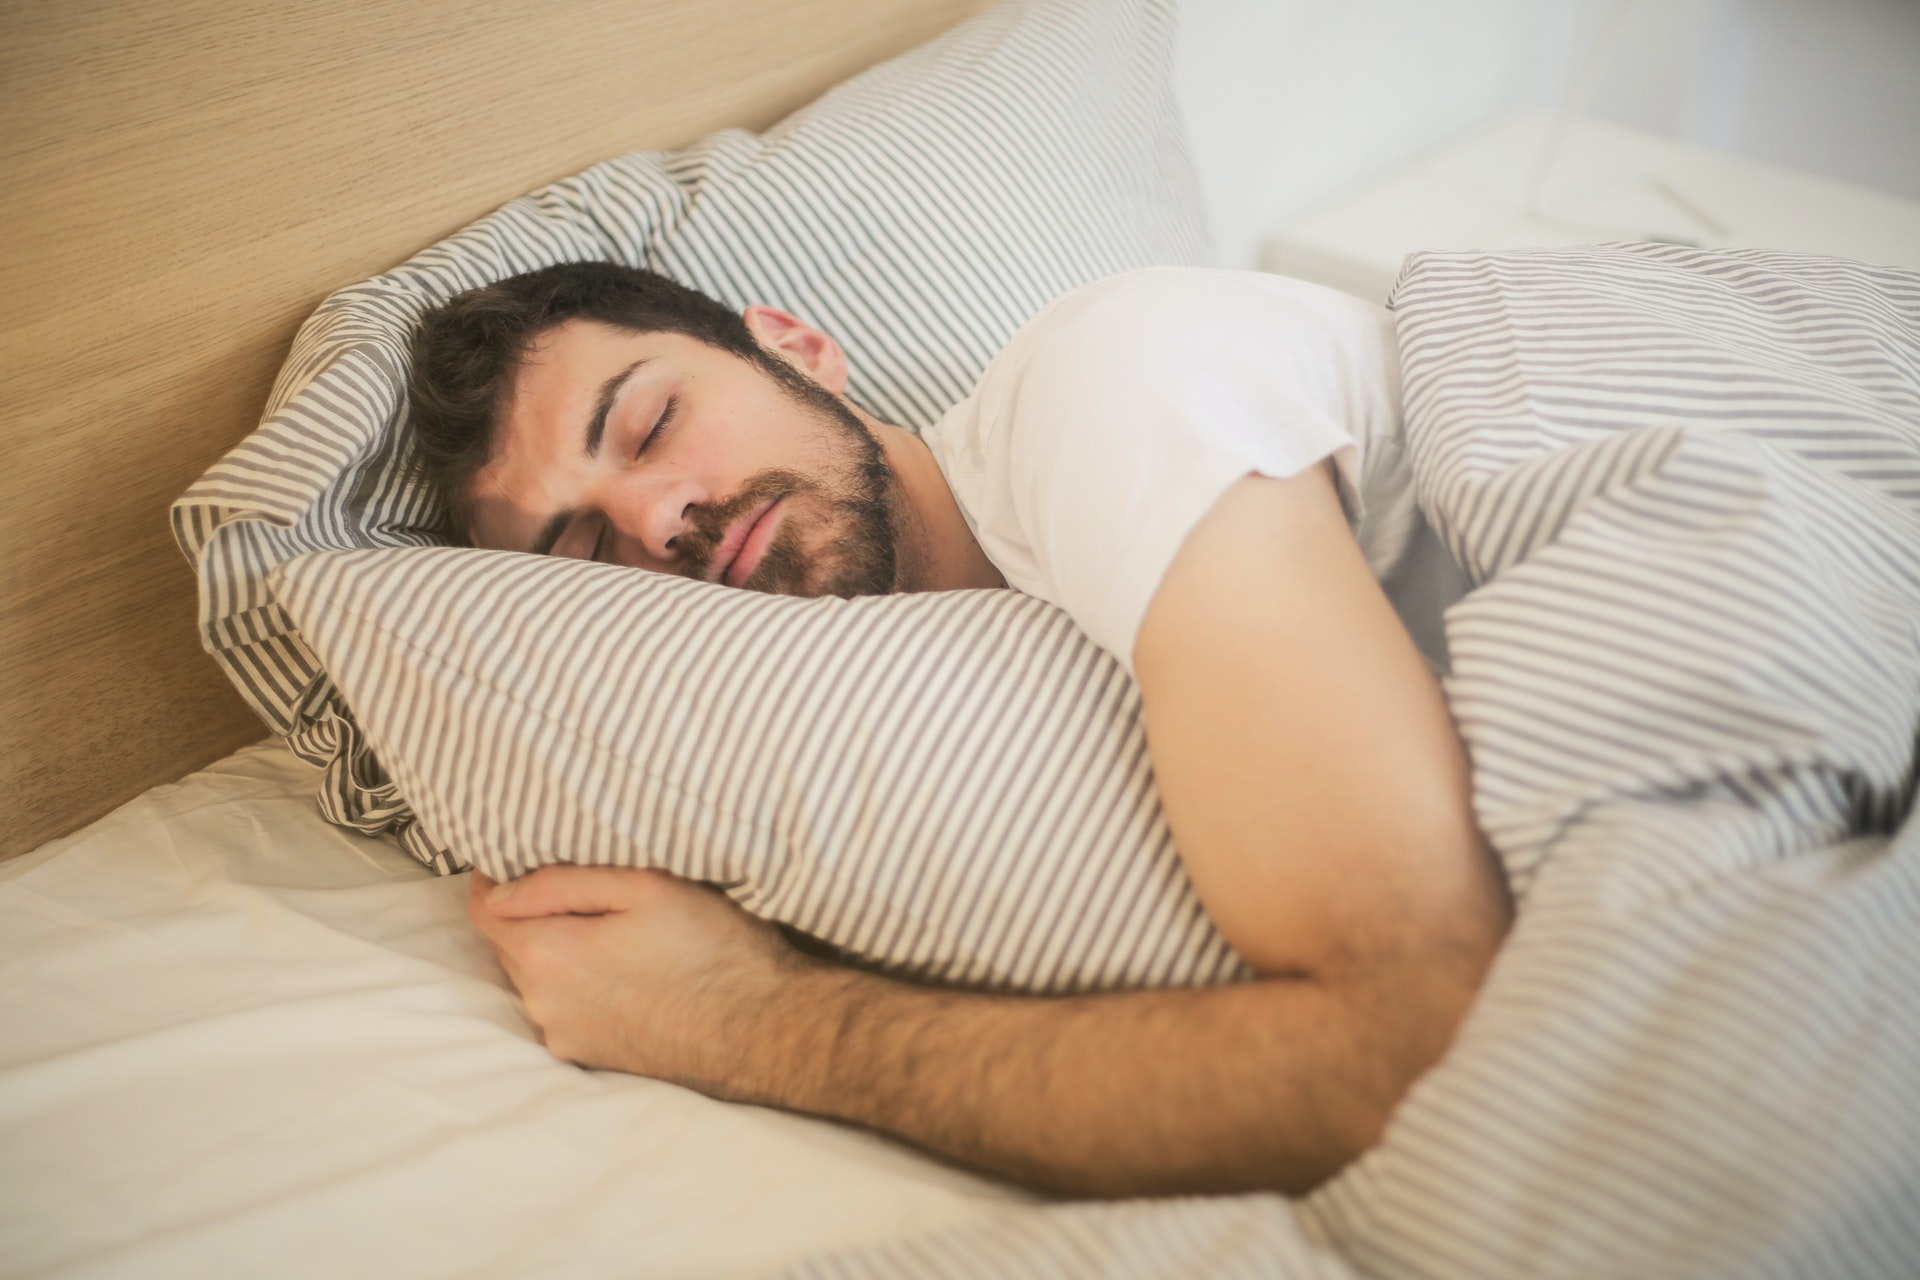 Is Melatonin Dangerous?